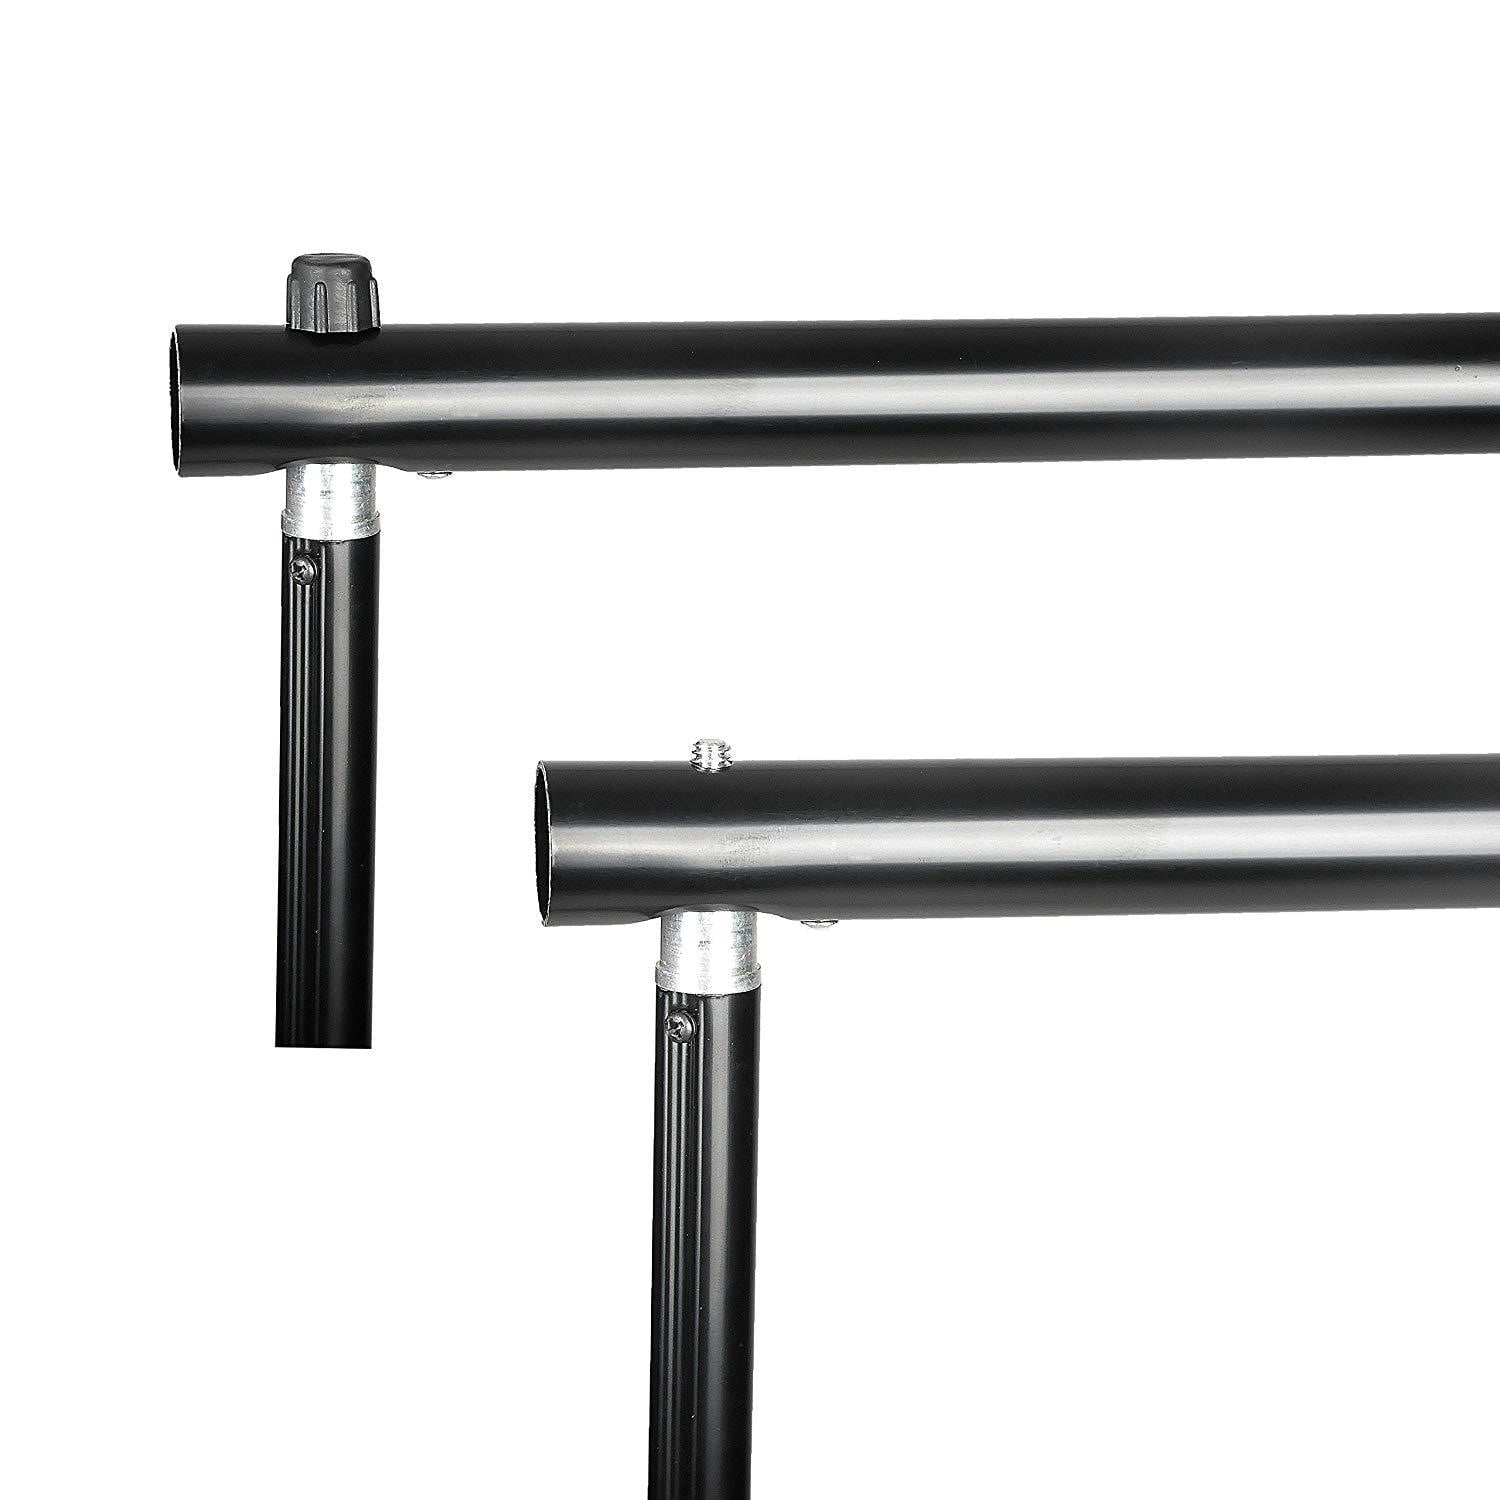 Emart Photo Video Studio 10Ft Adjustable Background Stand - EMART8